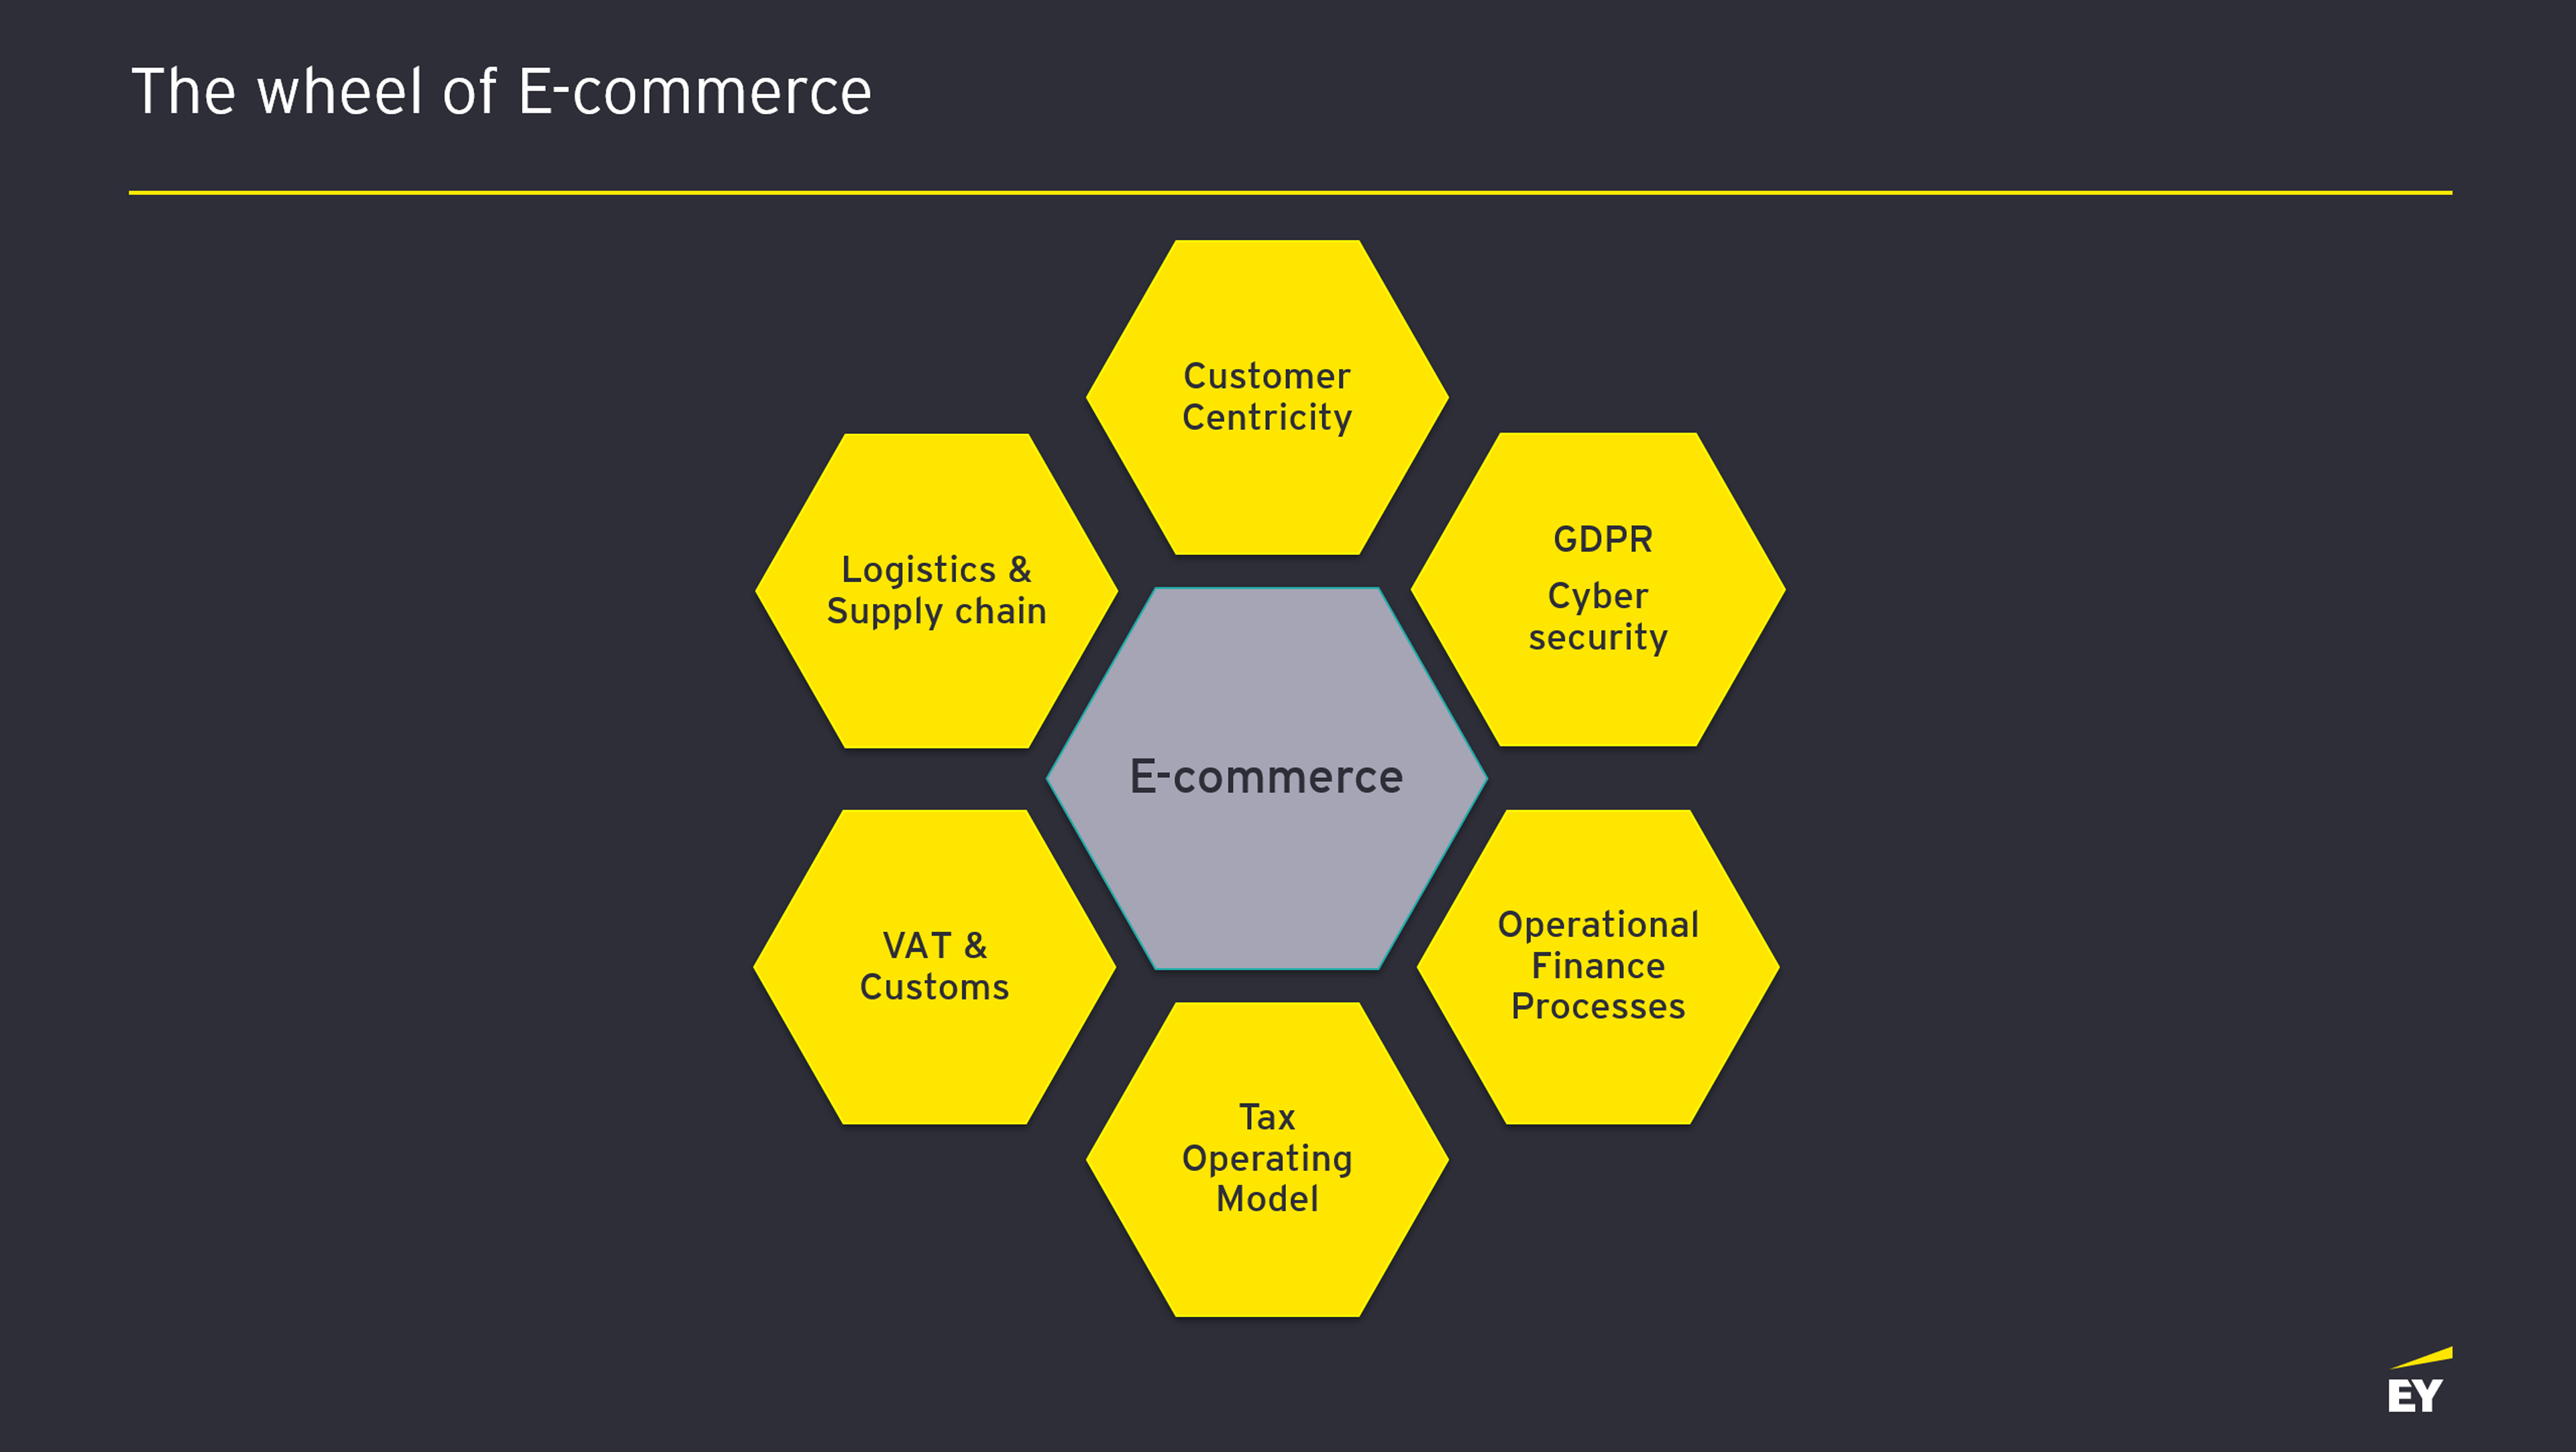 The wheel of E-commerce